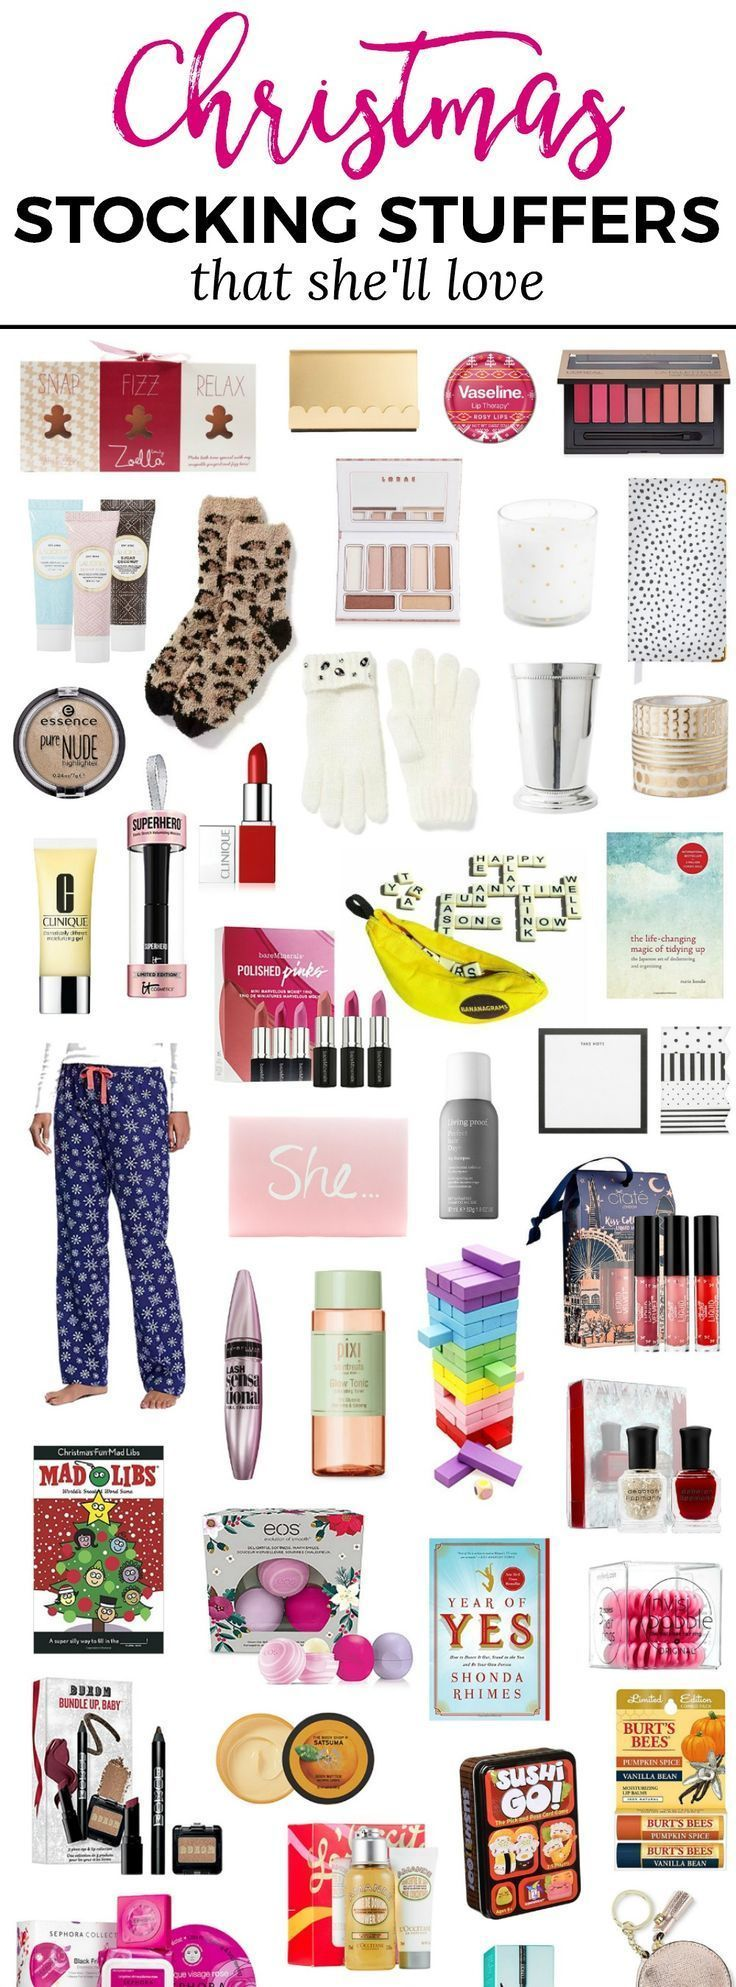 The best Christmas stocking stuffers for women! You won't want to miss this adorabl ...